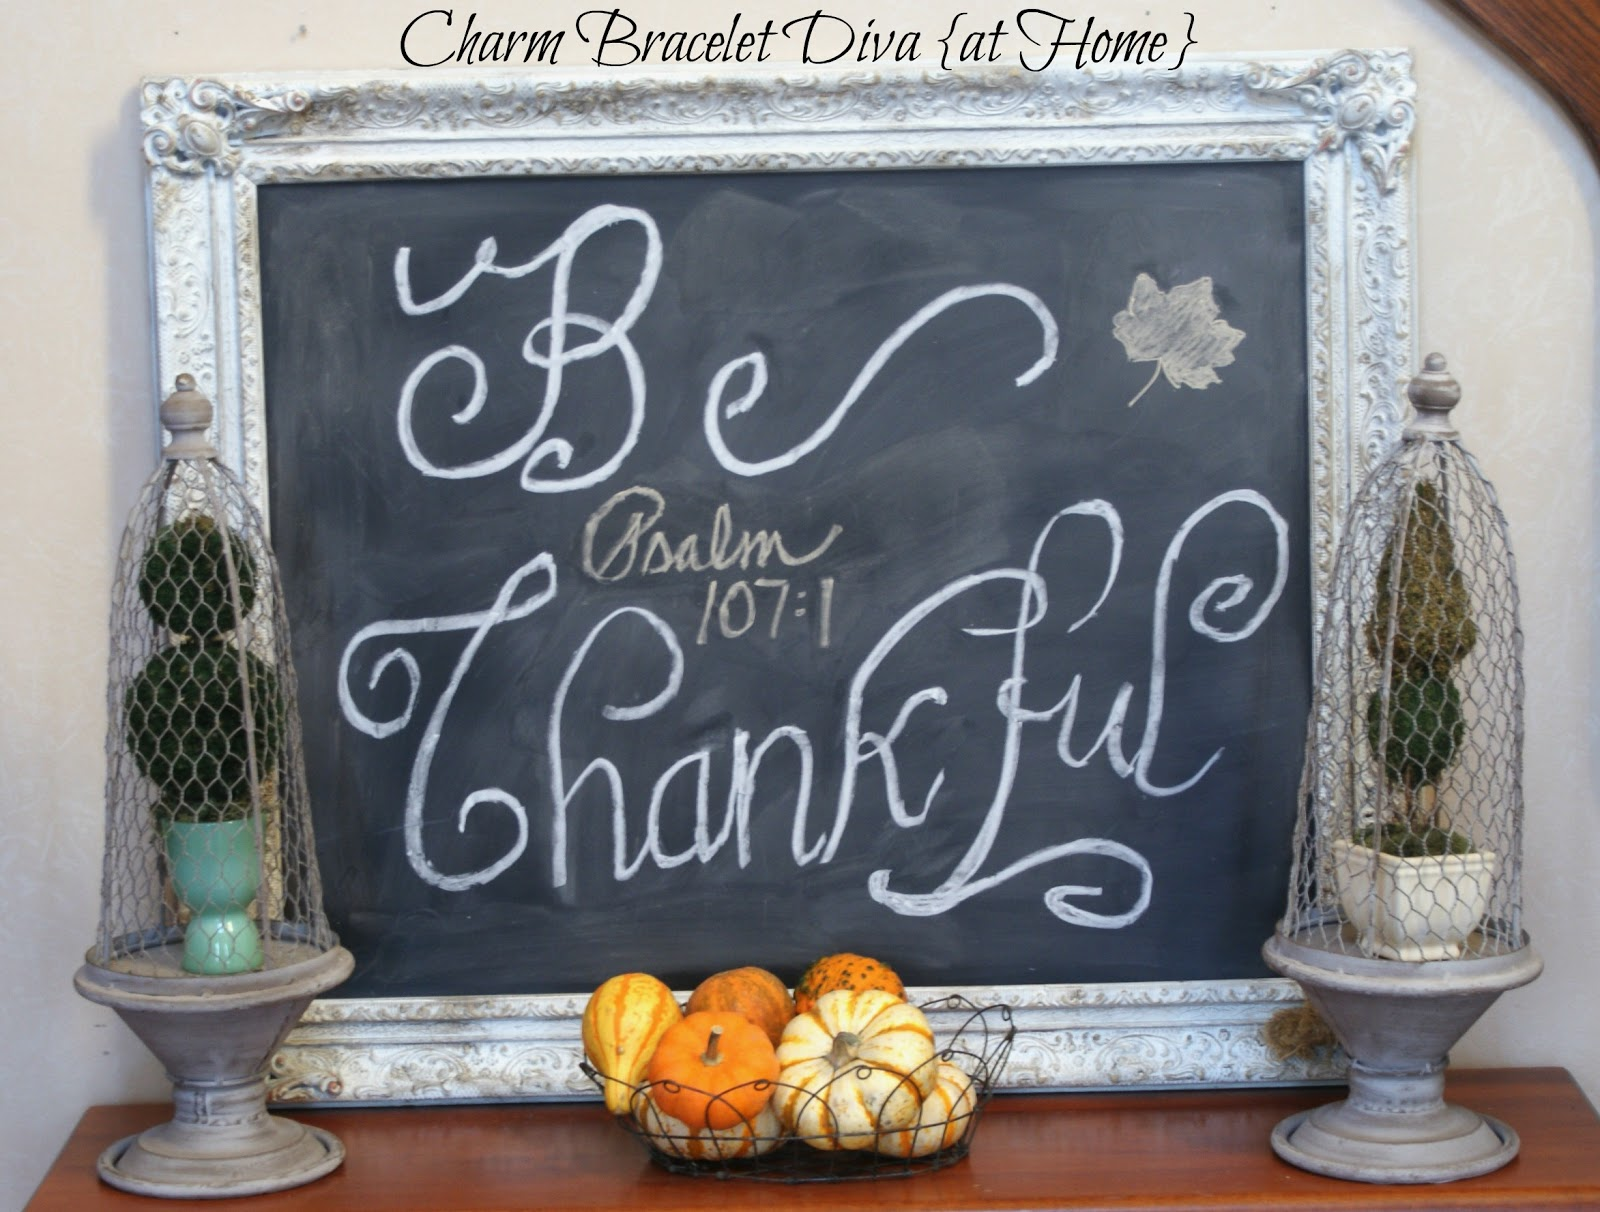 Chalkboard Designs Ideas fall series take 2 thankgiving chalkboard ideas Fall Series Take 2 Thankgiving Chalkboard Ideas